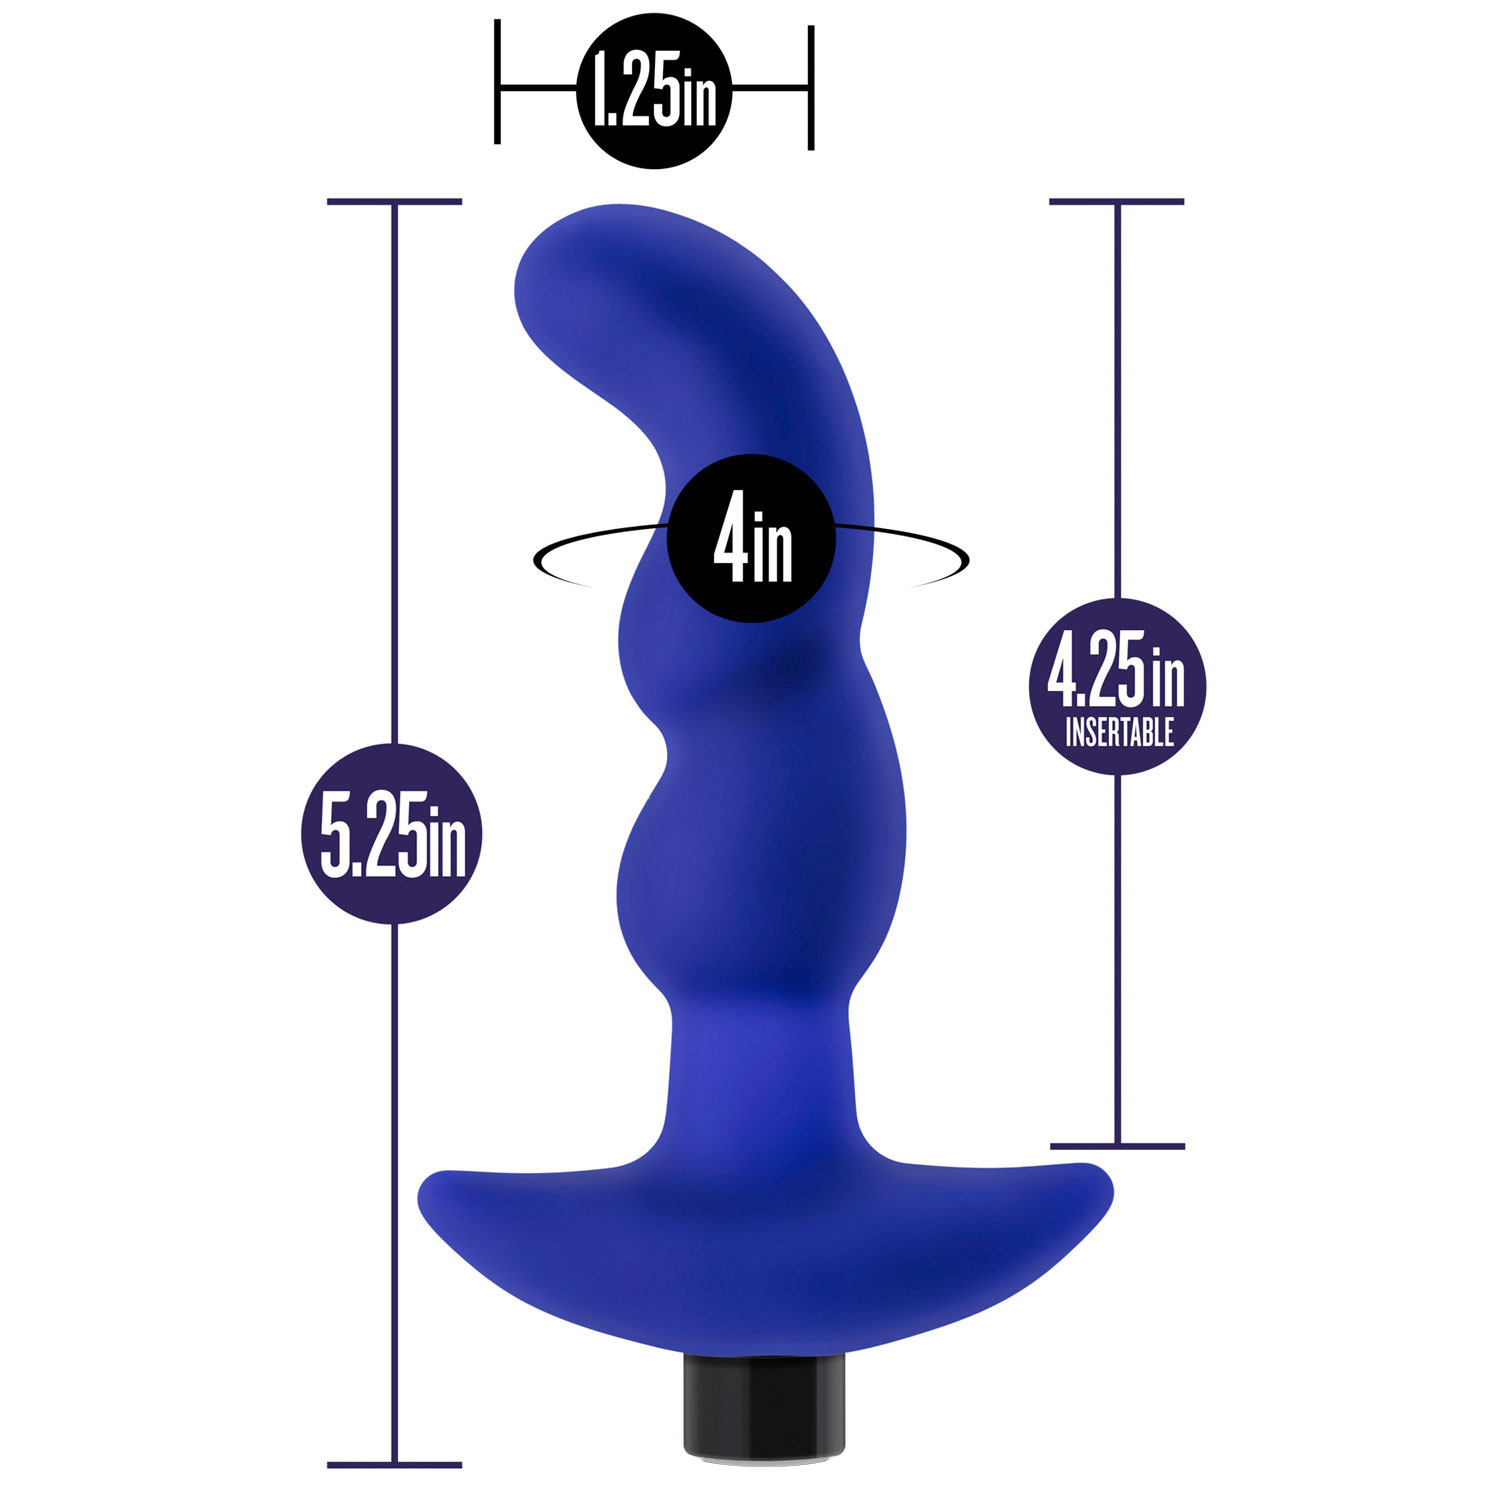 Performance Plus Charger Rechargeable Silicone Prostate Massager - Measurements